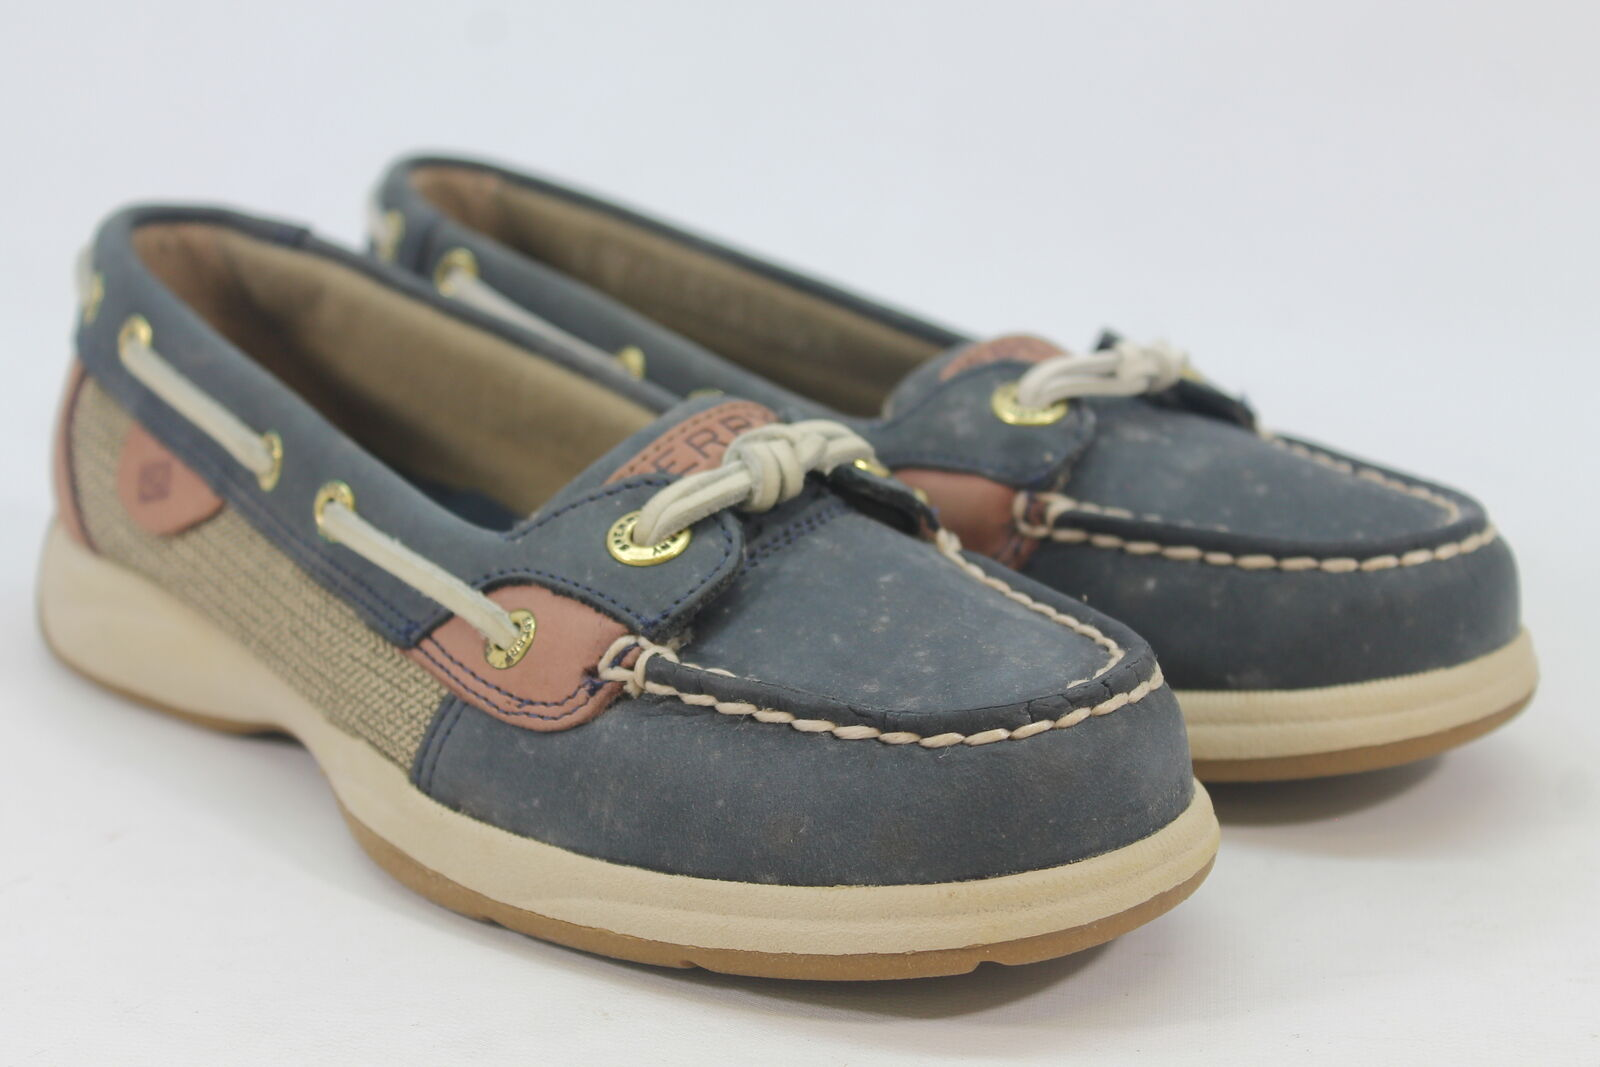 Sperry-Top Sider Angelfish Women's Grey/Multi Boat Shoes 6M (ZAP12579)